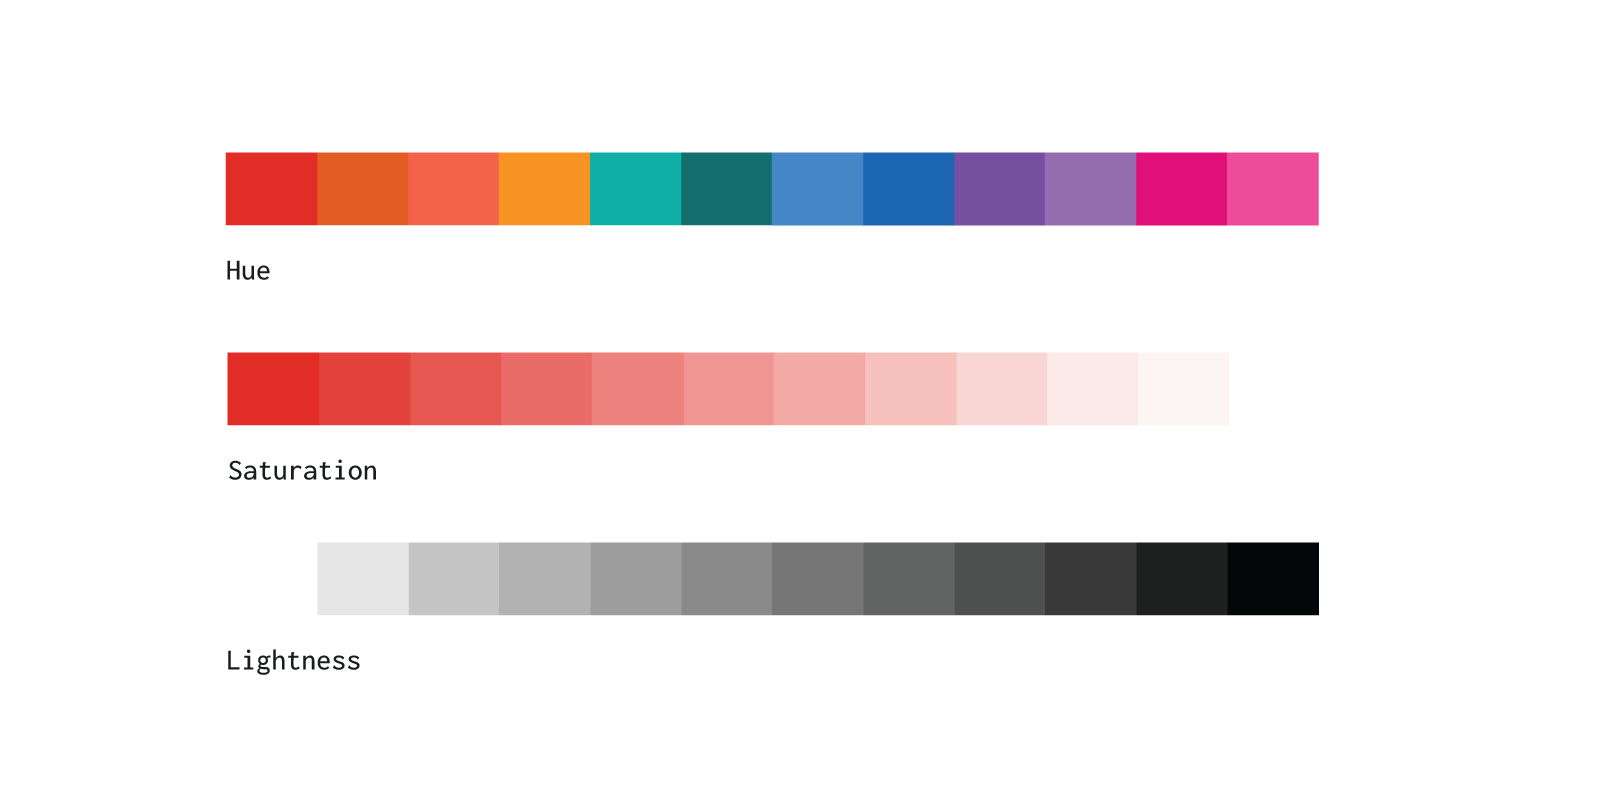 Visual: examples of Hue, Saturation, and Lightness